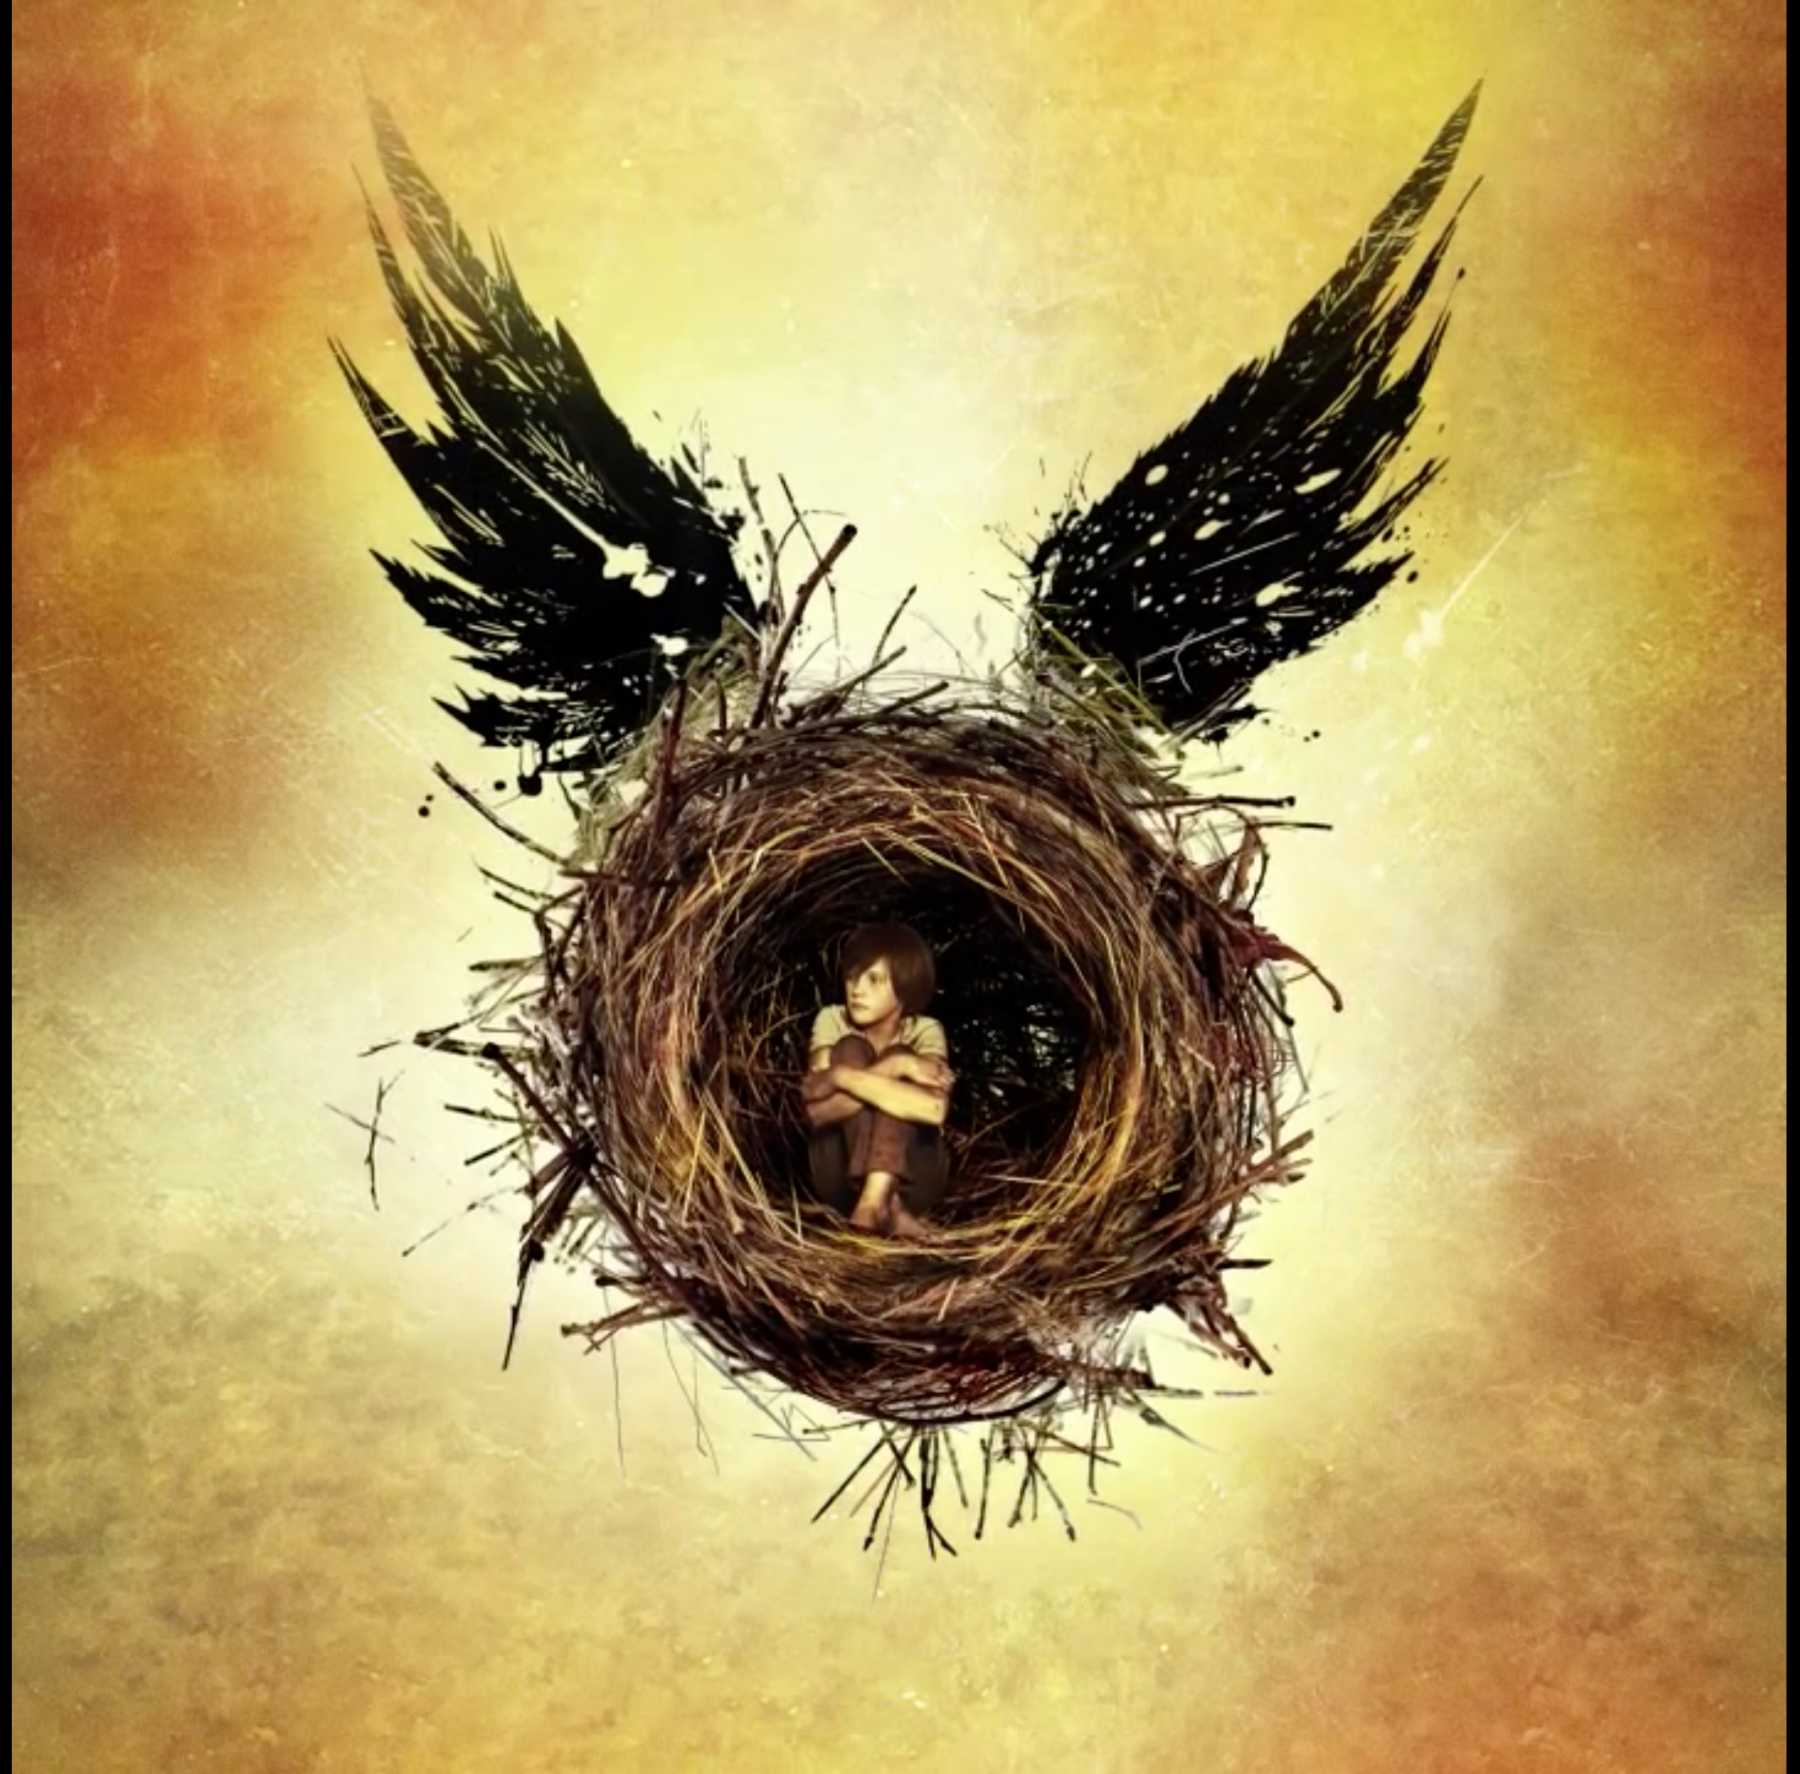 'Harry Potter And The Cursed Child' Brings More Magic To The Potterverse | Harry Potter